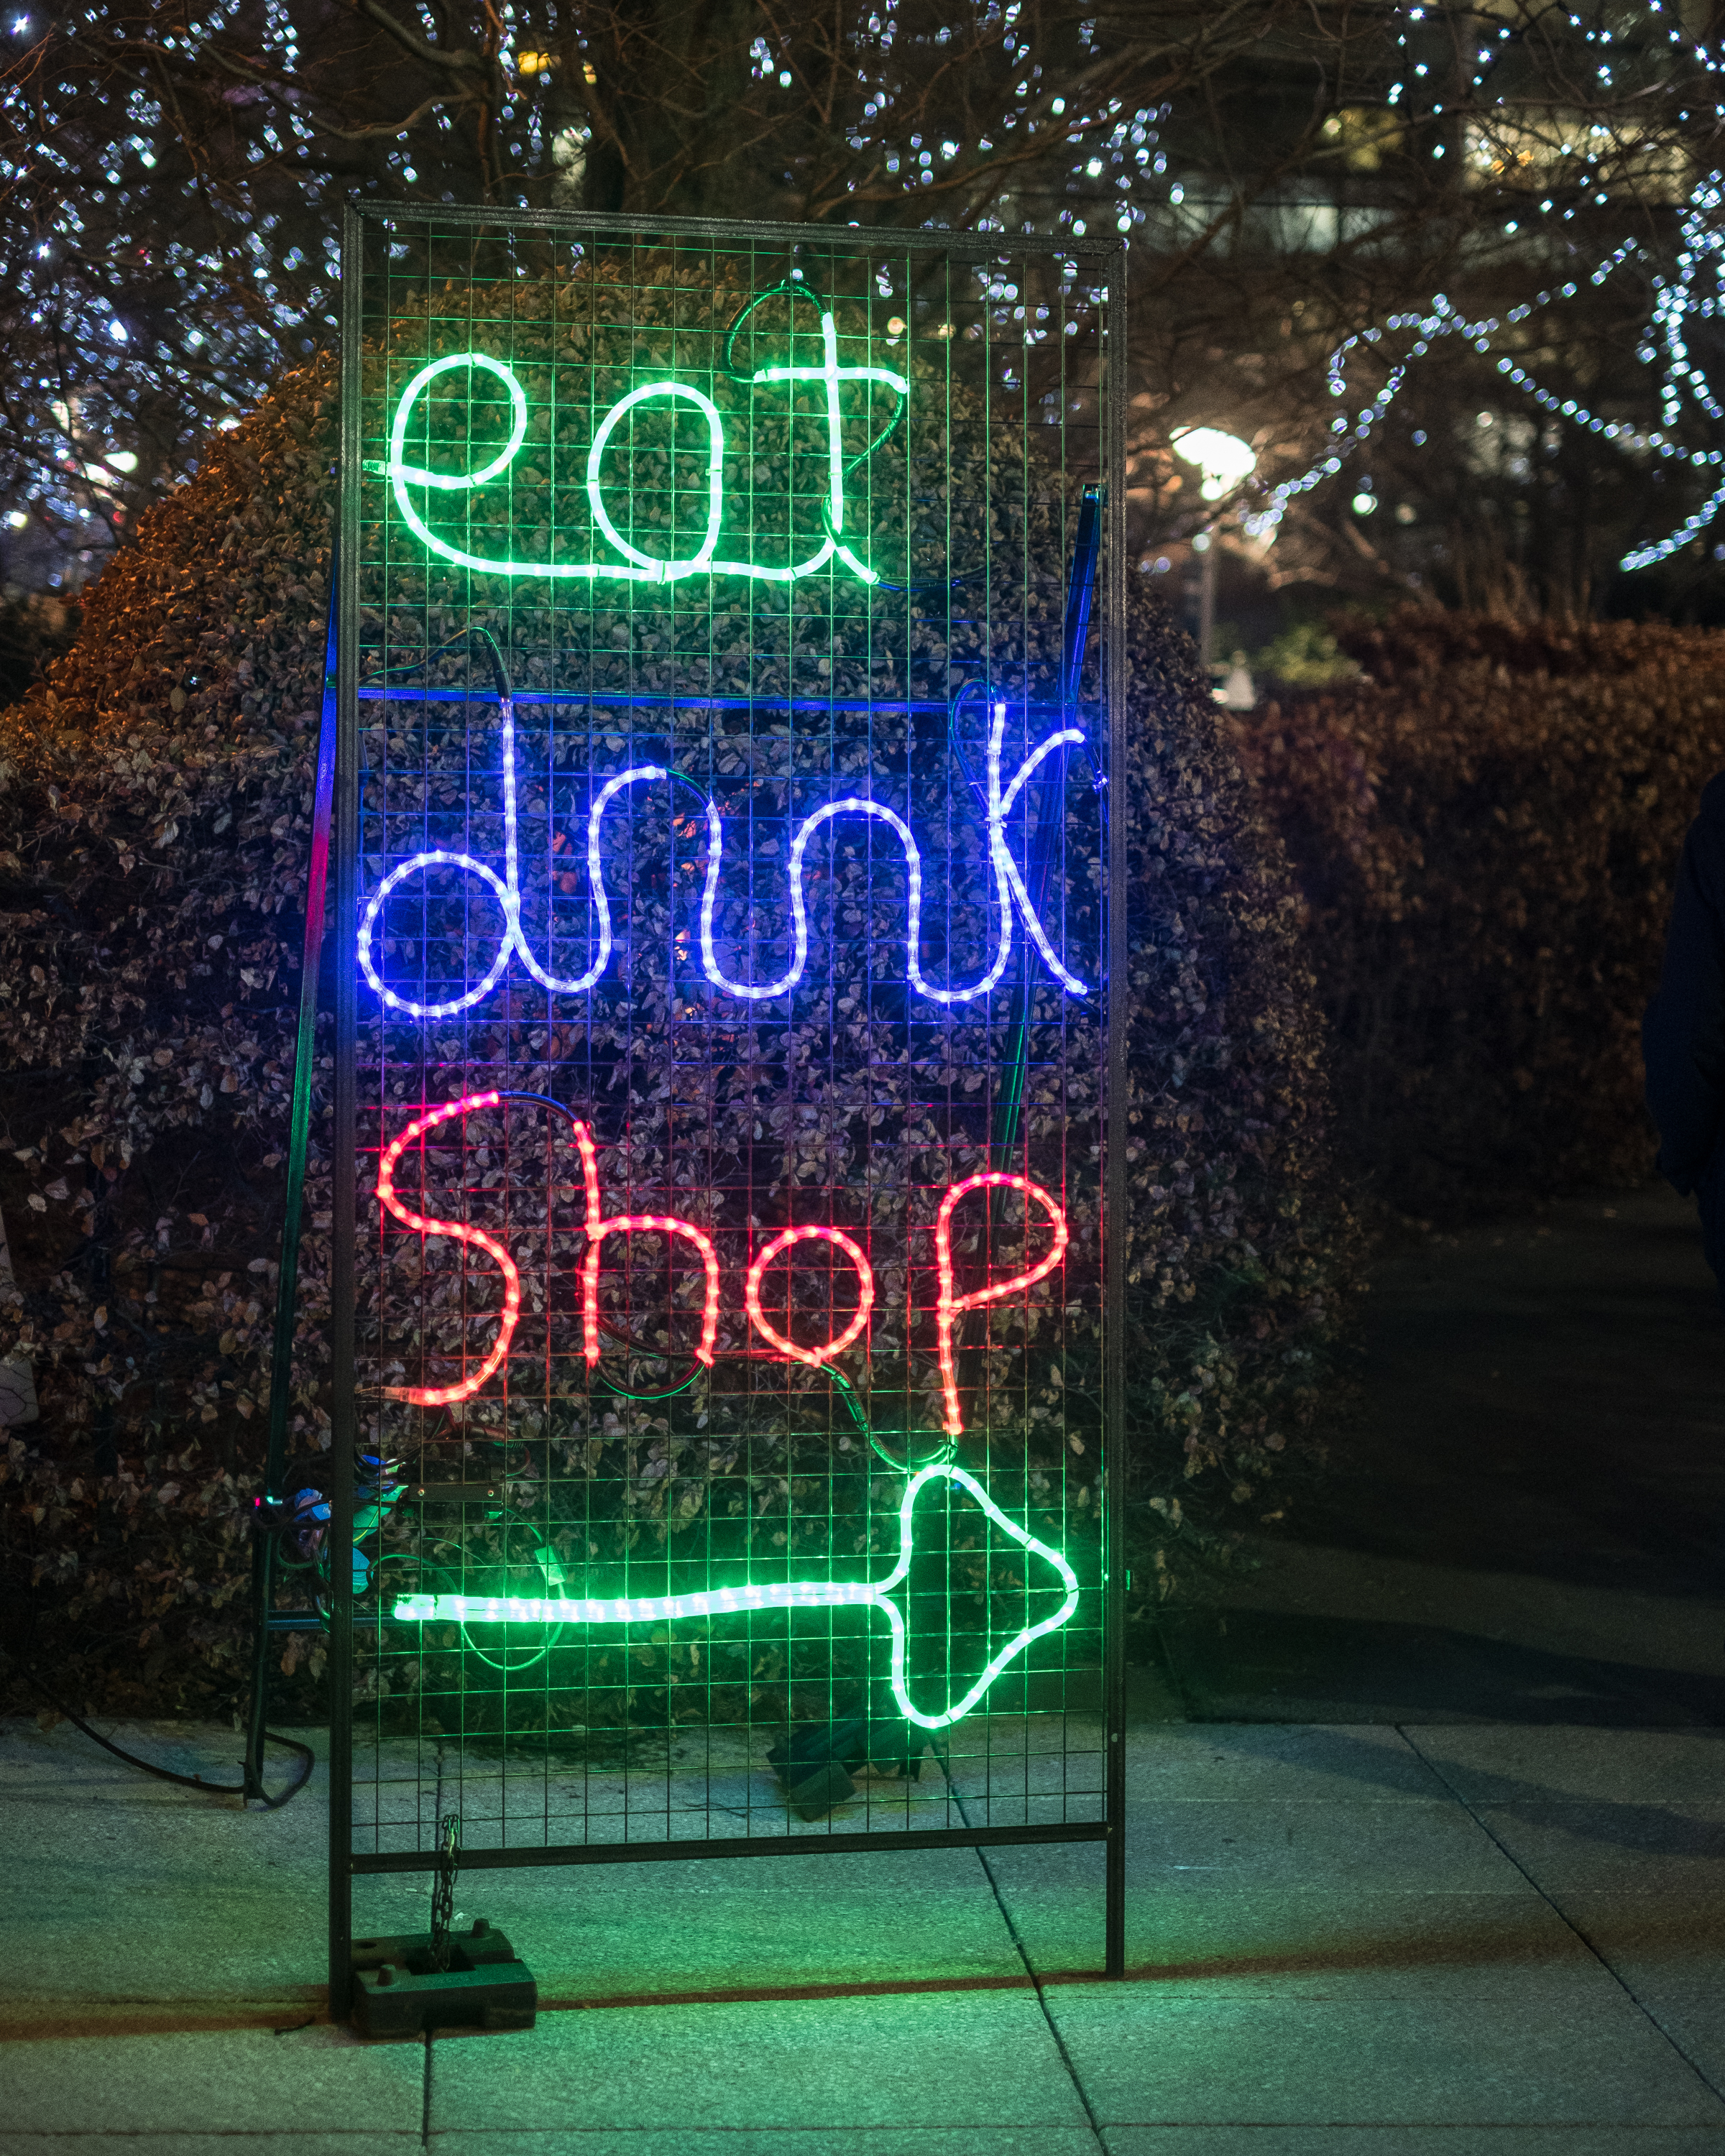 Eat Drink Shop